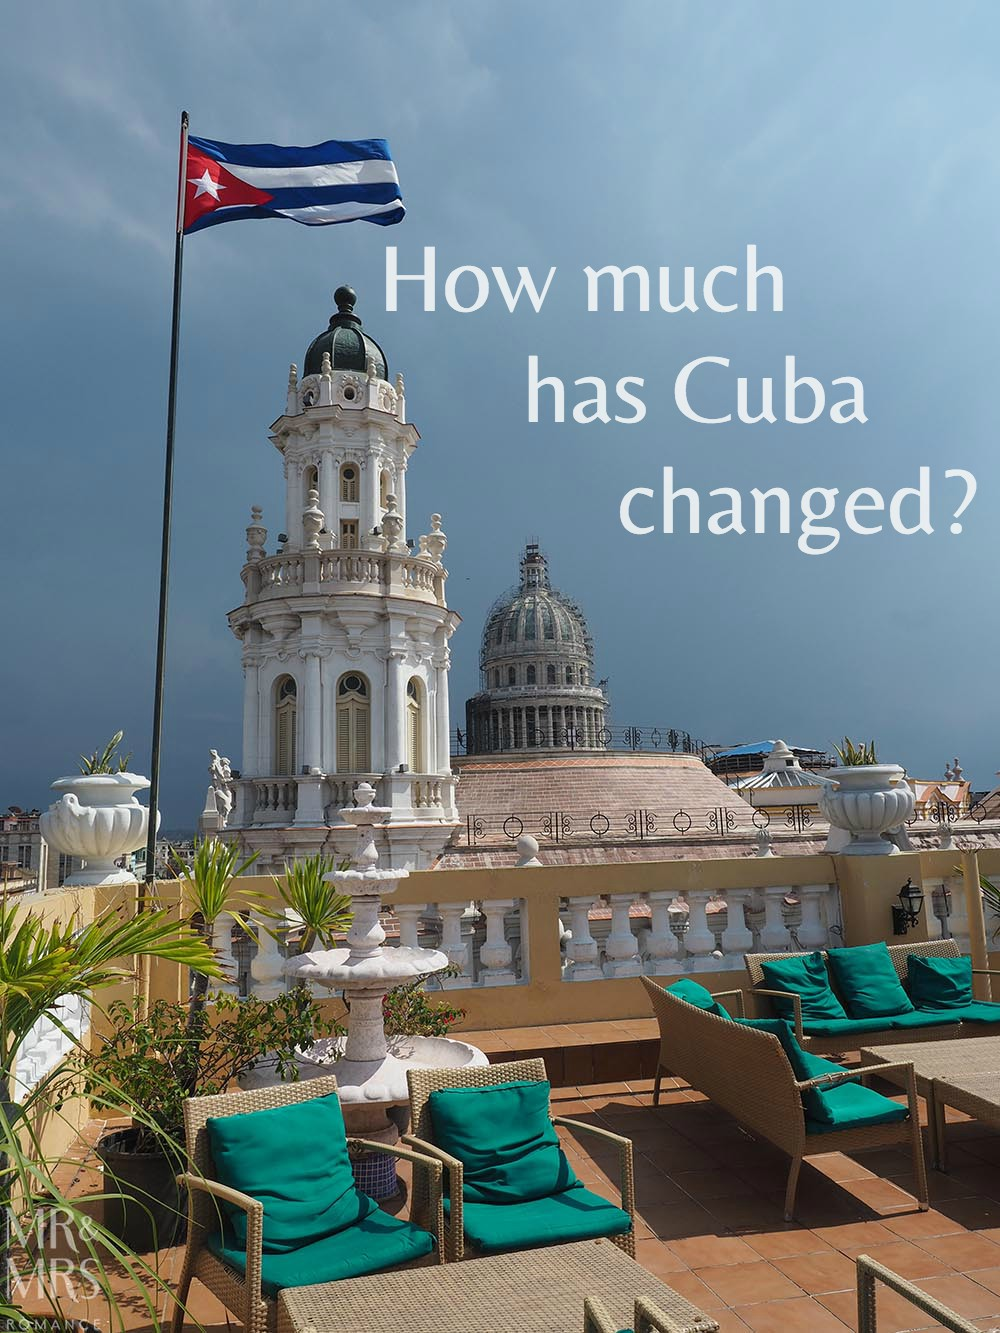 Havana Cuba - how much has Cuba changed?